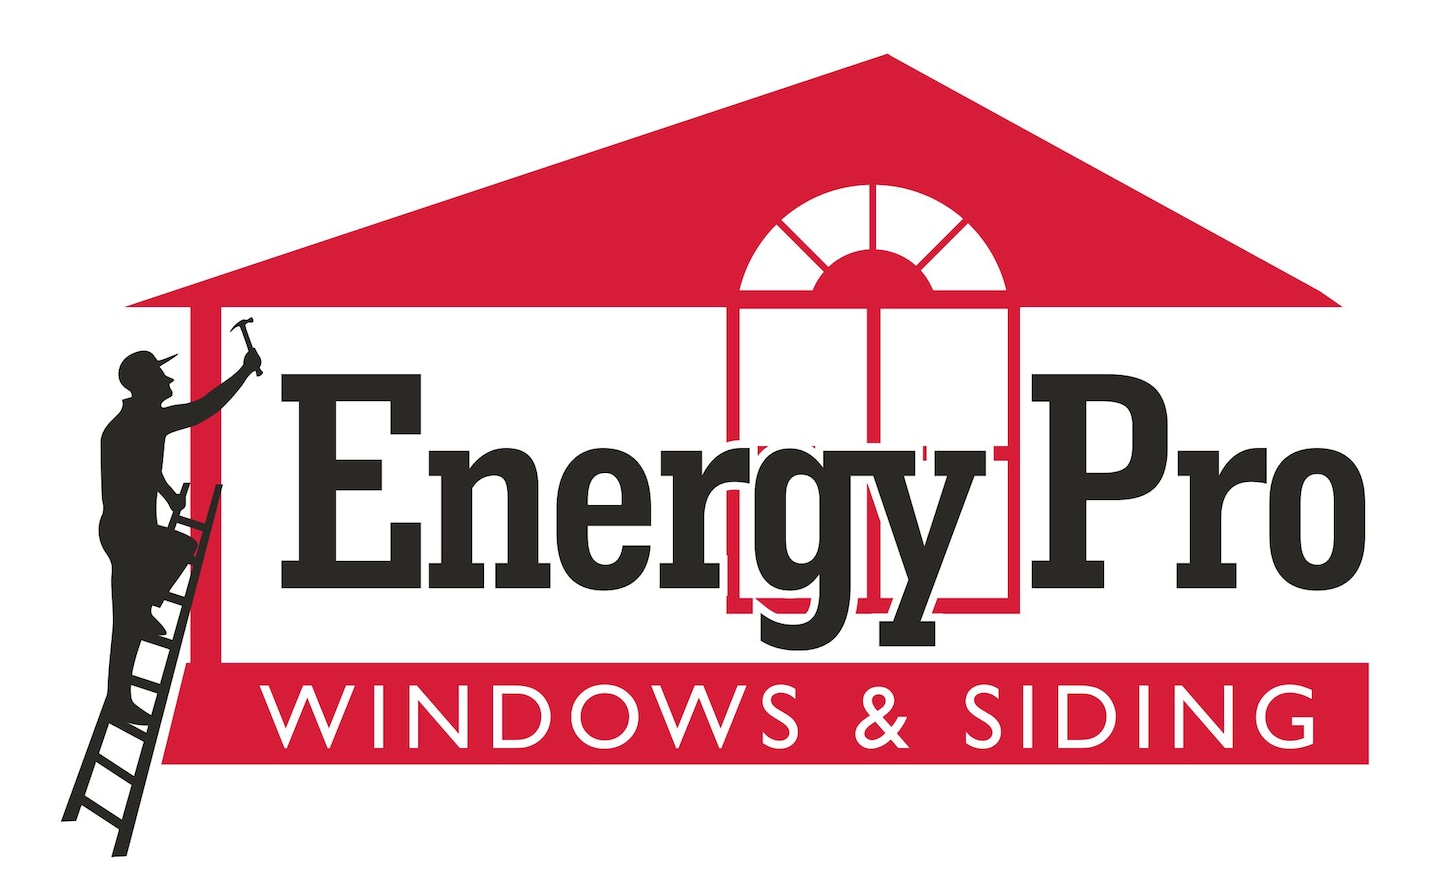 Energy Pro Windows & Siding